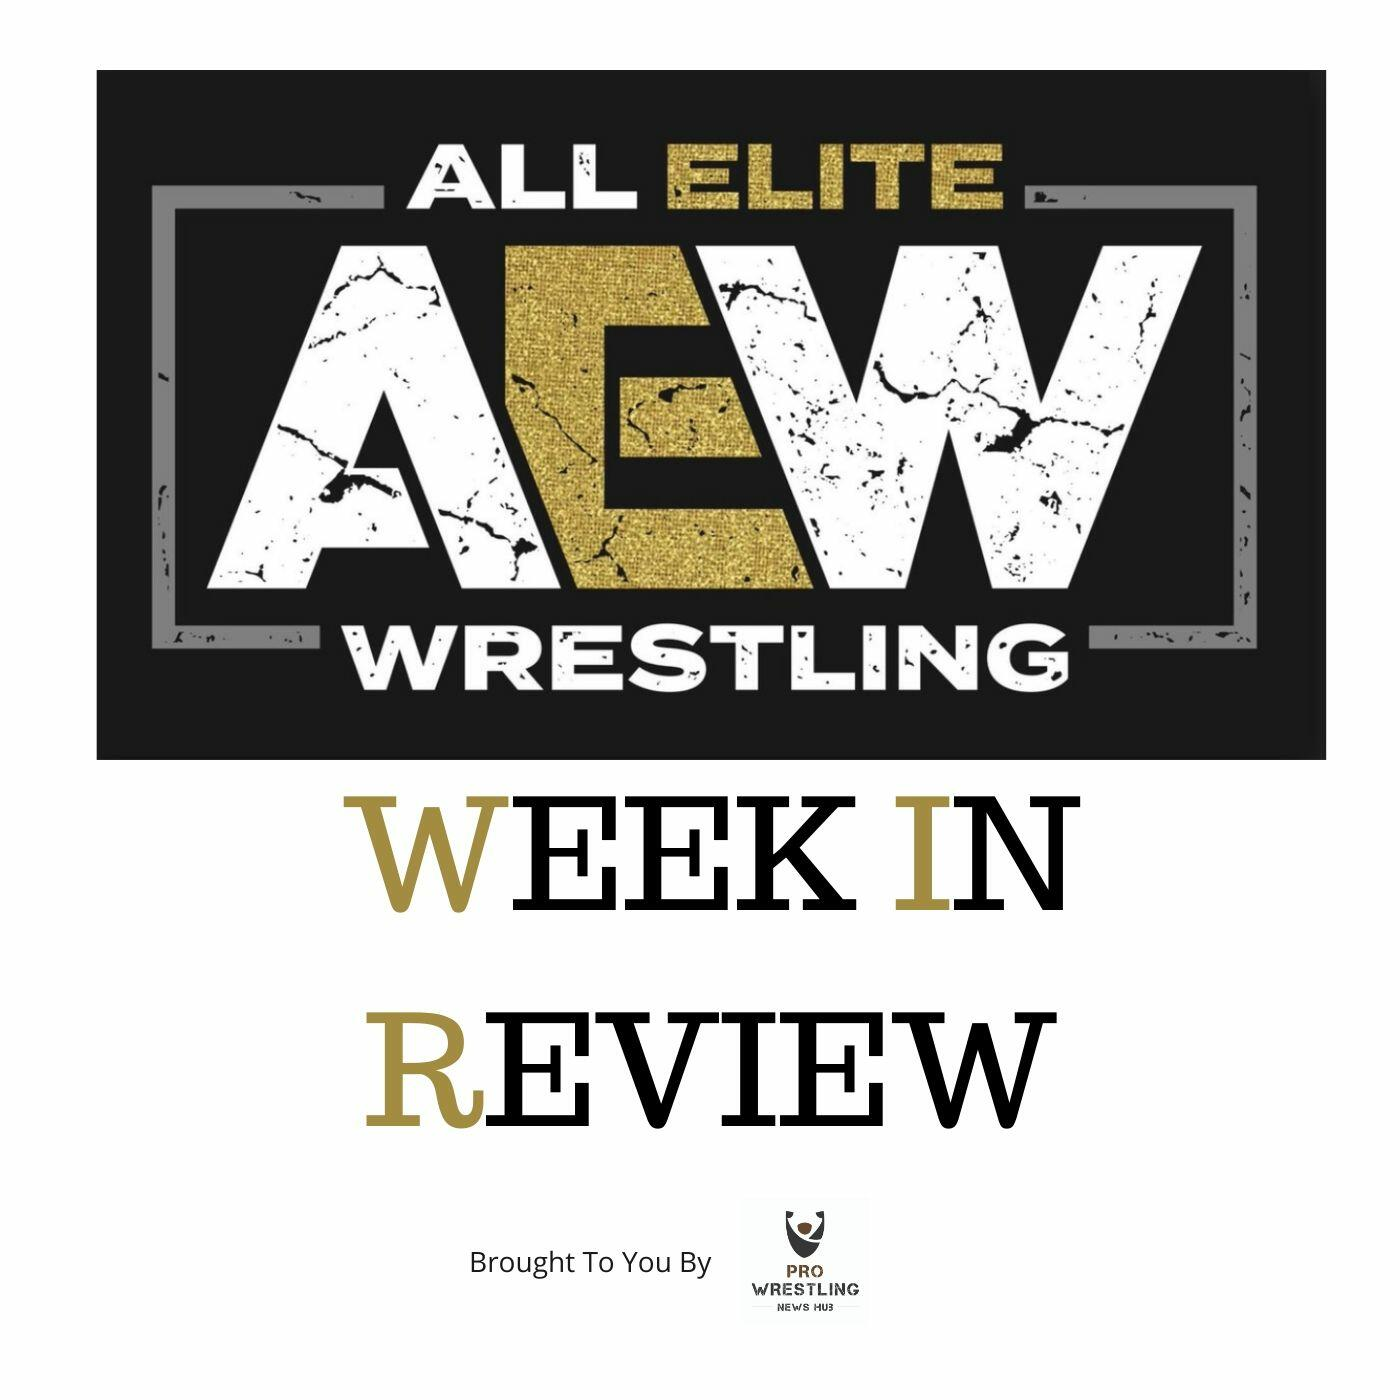 AEW Week in Review - AEW News & Opinion Podcast